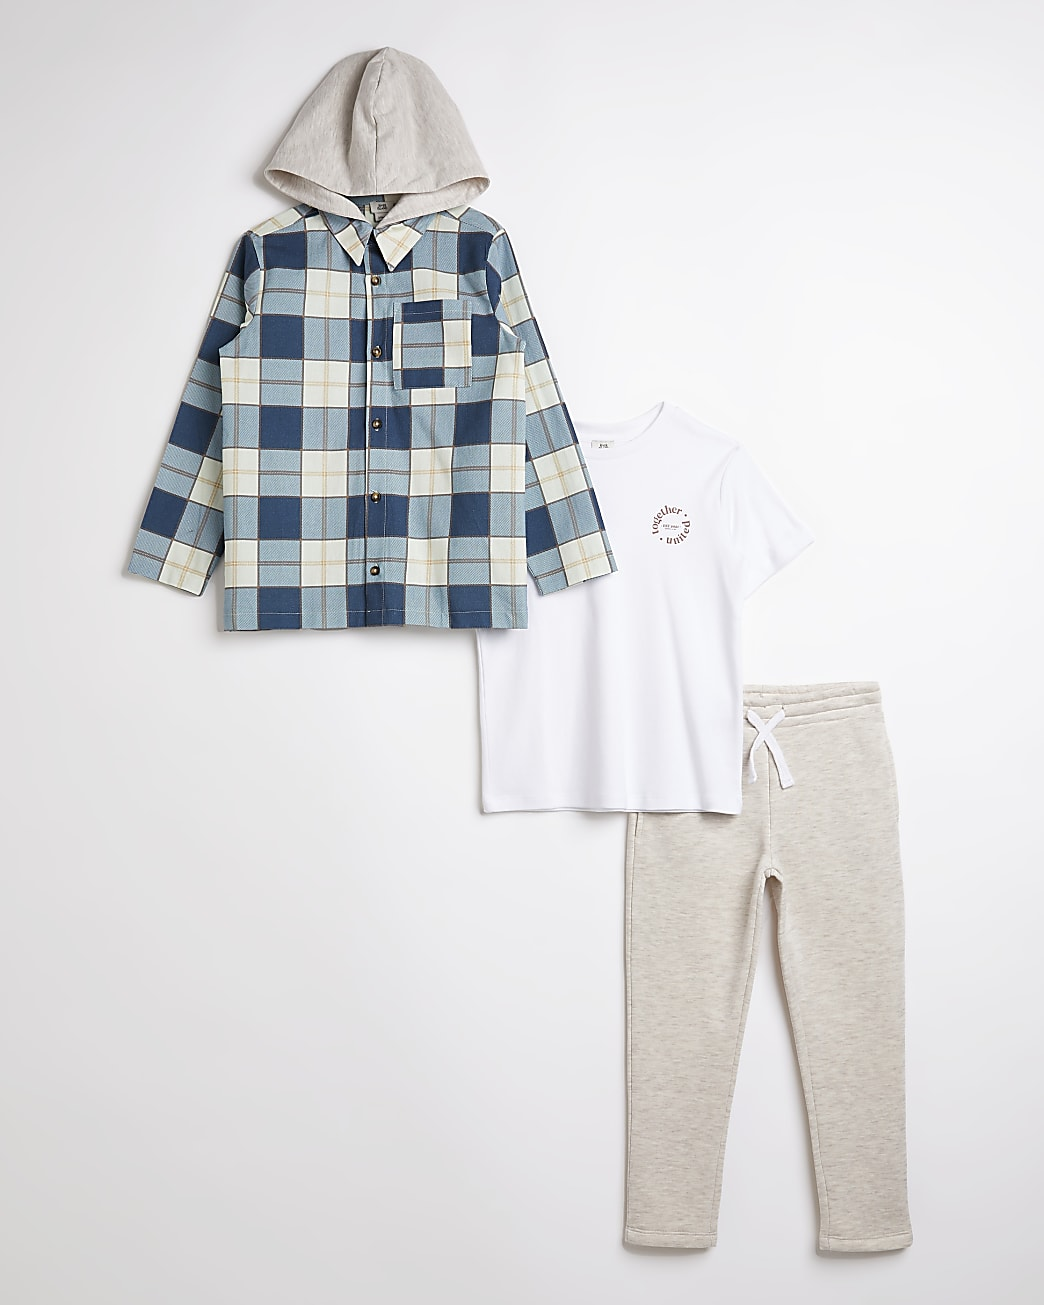 Boys blue check hooded shacket 3 piece outfit